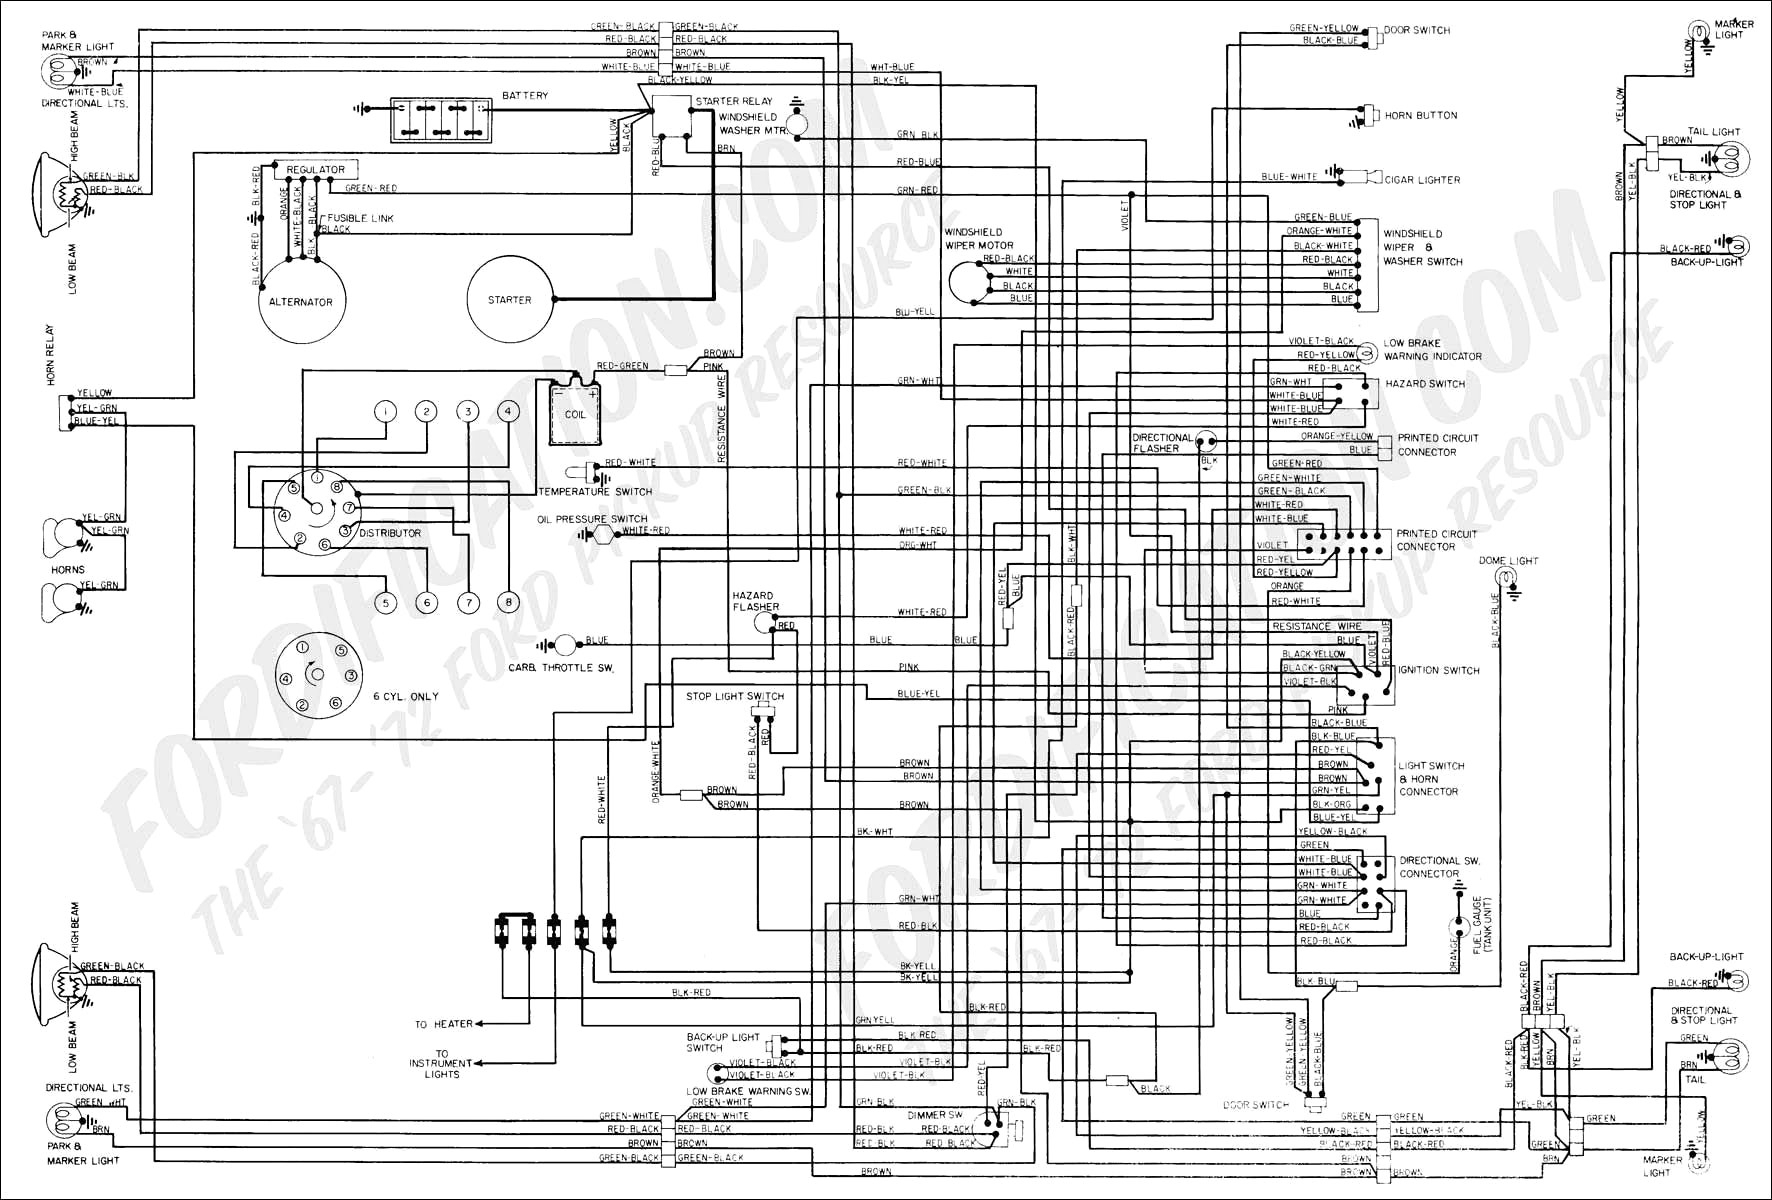 f250 wiring schematic - massey feguson tractor ignition switch wiring  diagram for wiring diagram schematics  wiring diagram schematics